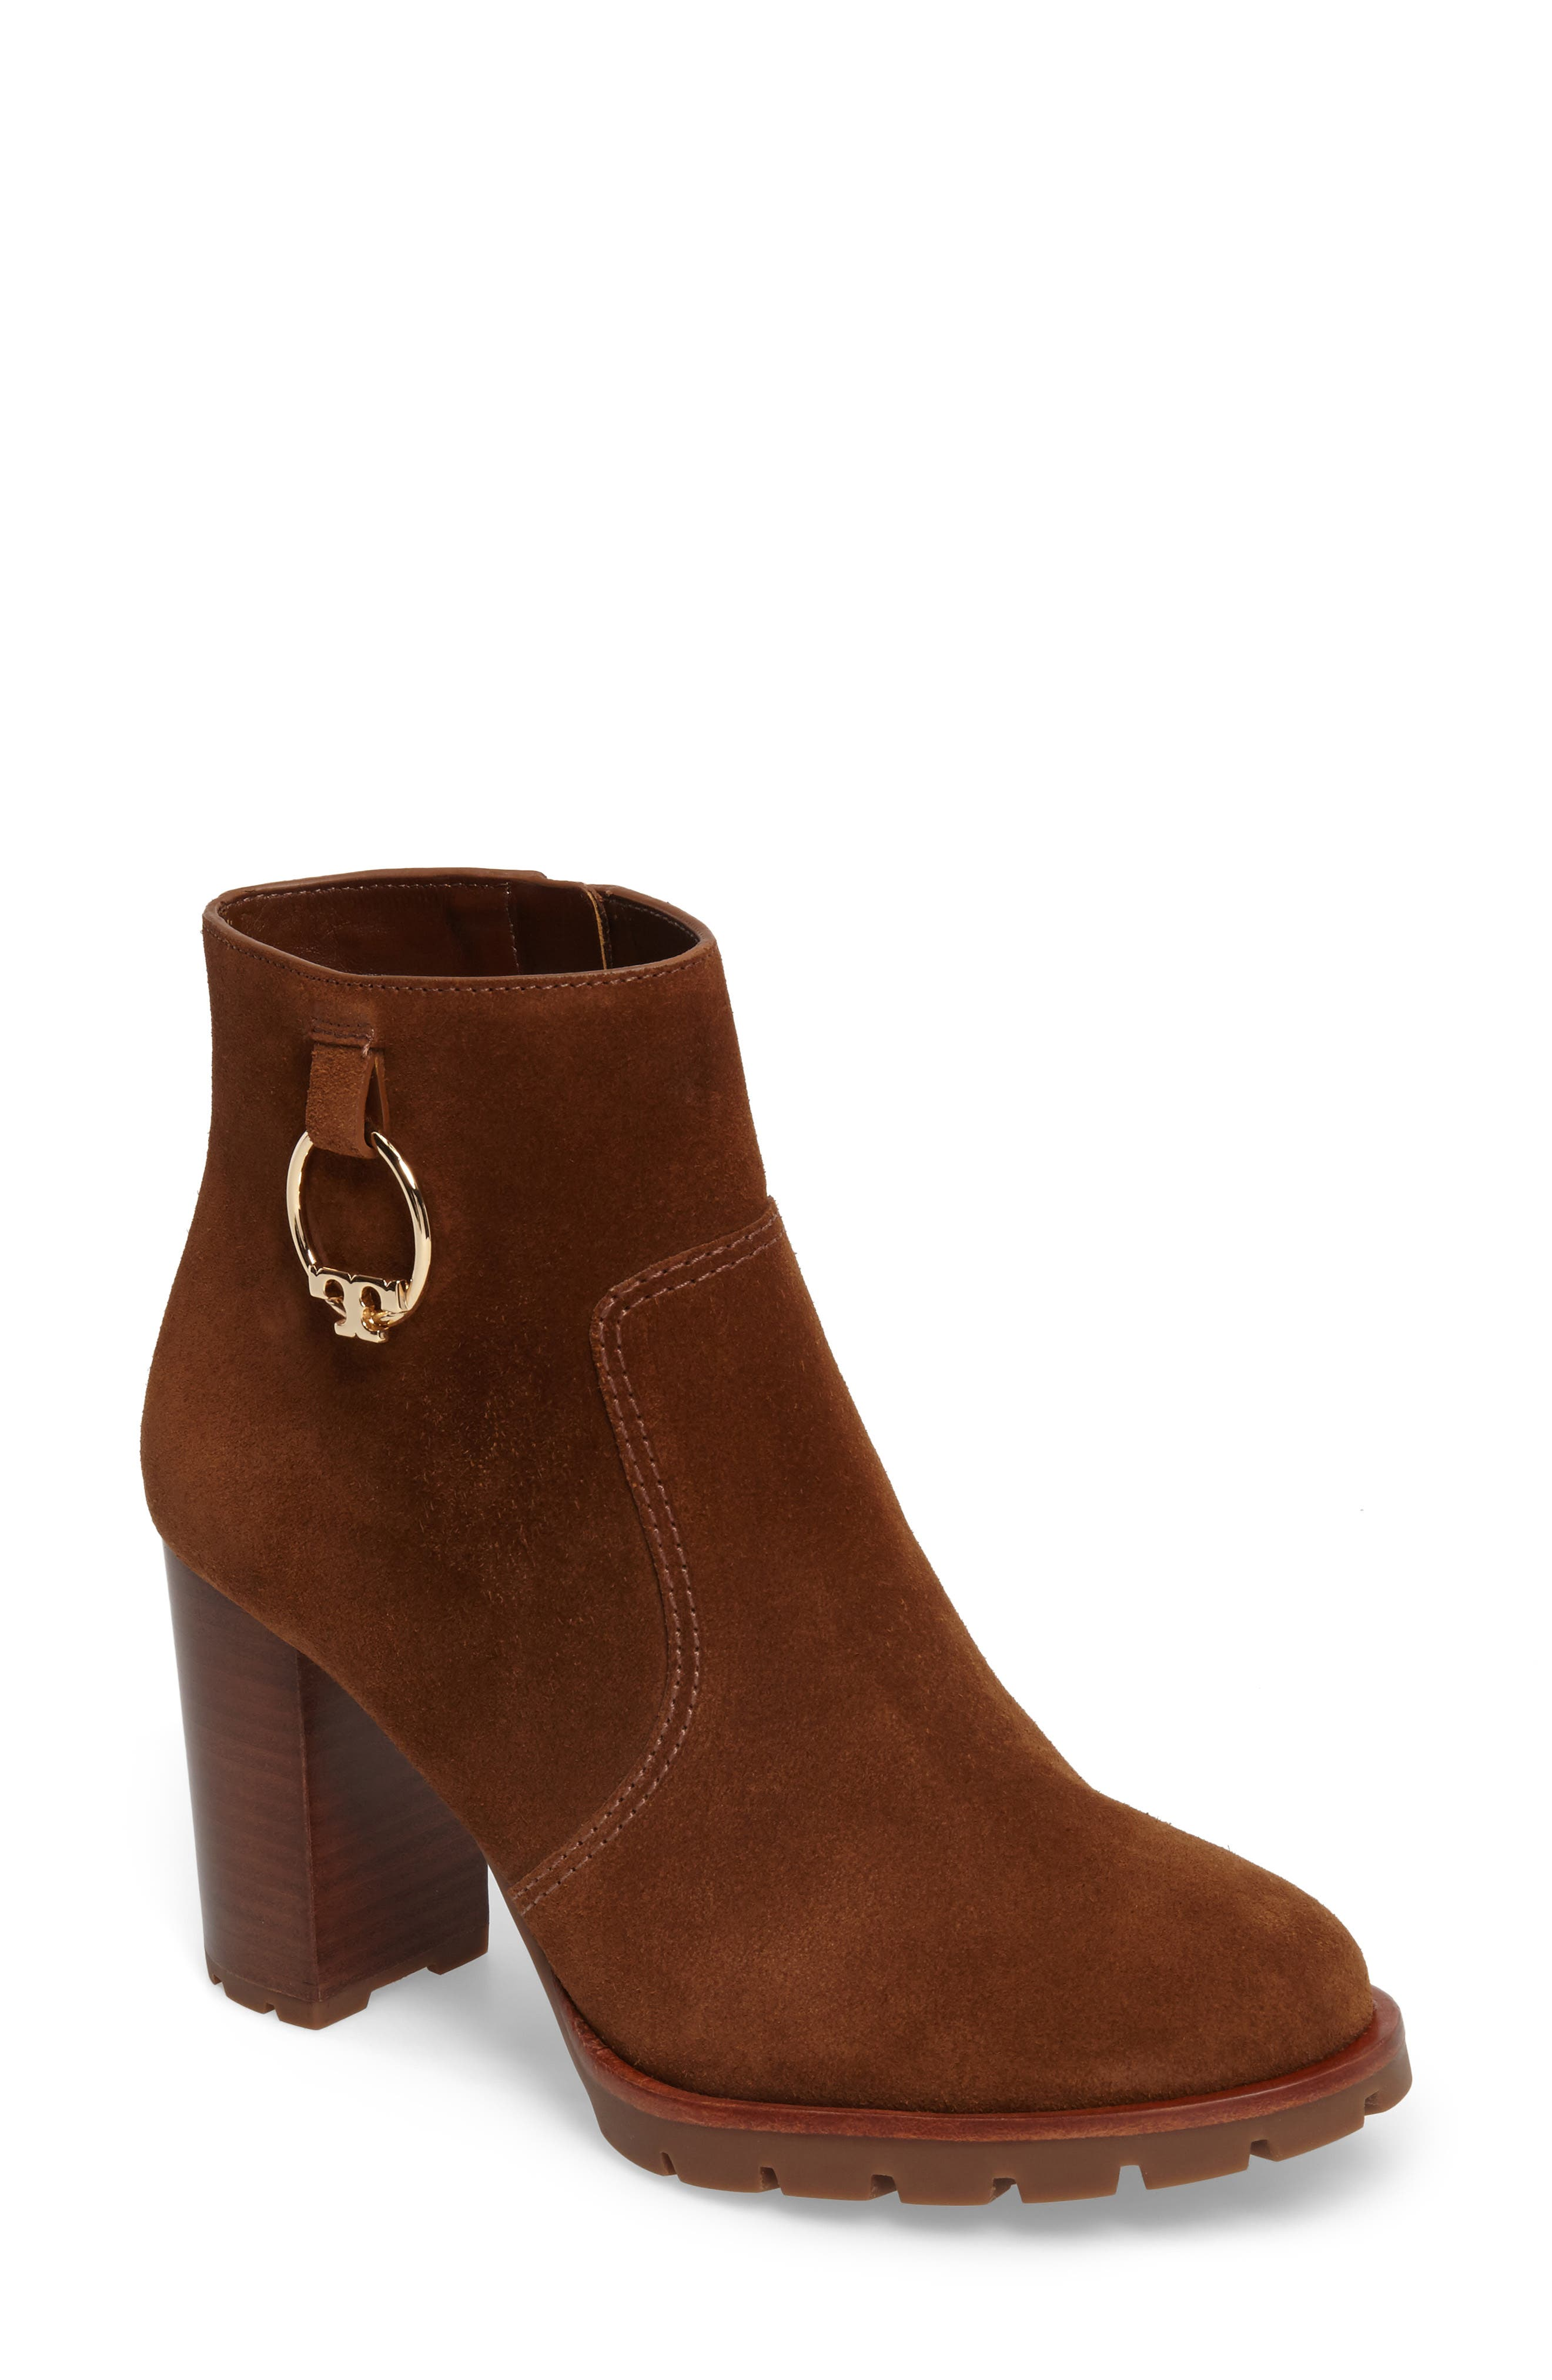 Sofia Lugged Logo Charm Bootie,                             Main thumbnail 1, color,                             Festival Brown